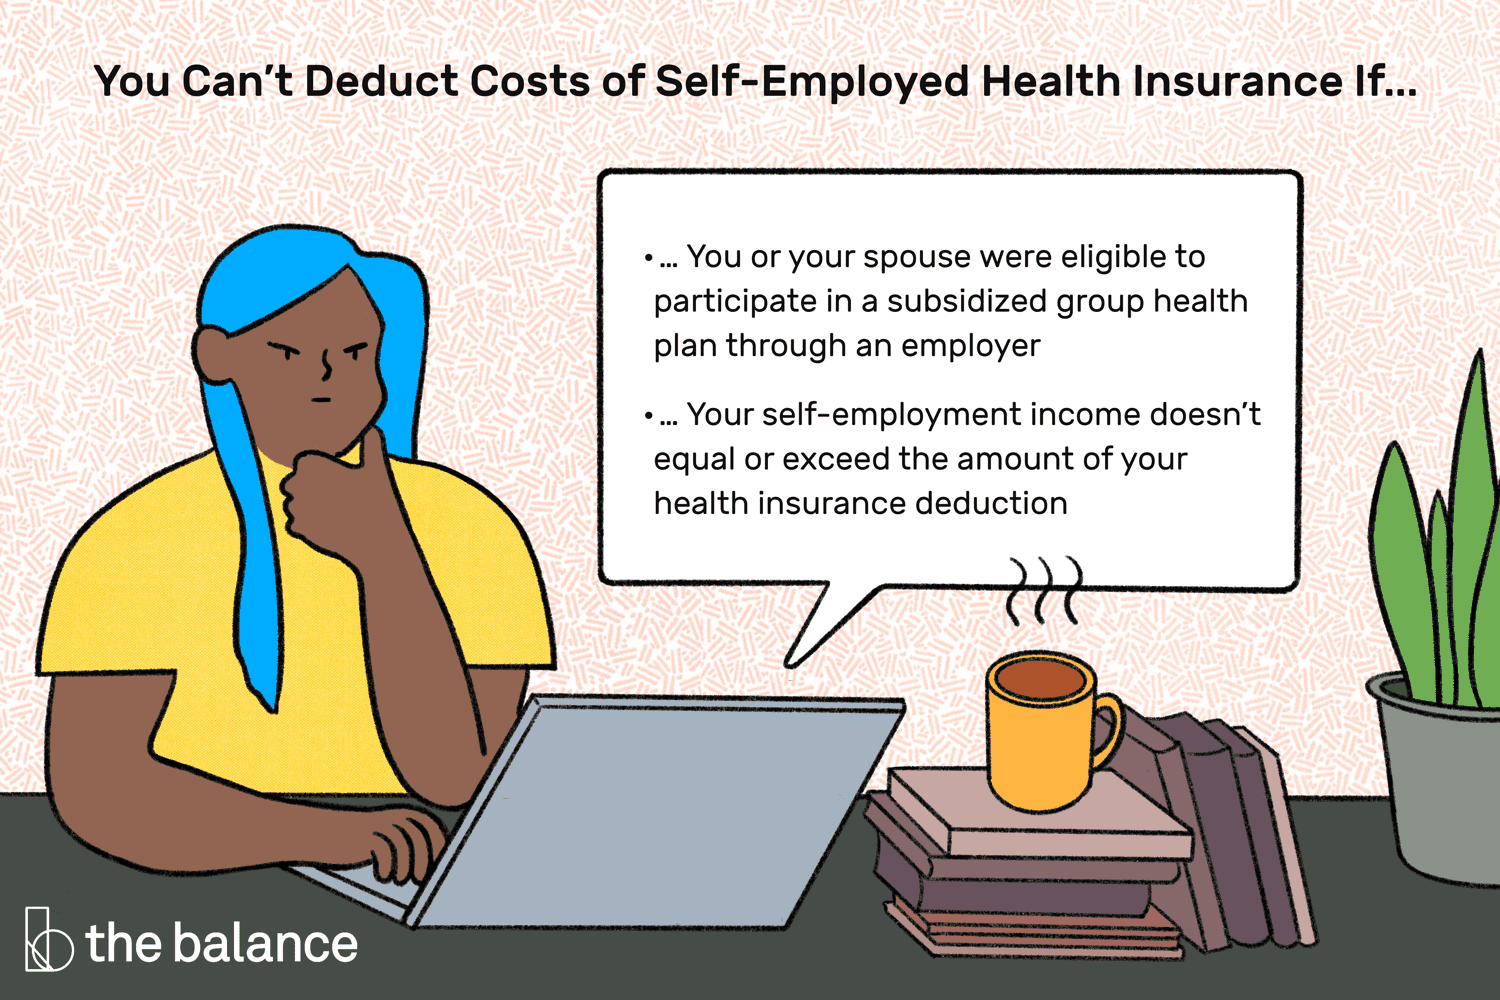 Claiming the Self-Employment Health Insurance Tax Deduction